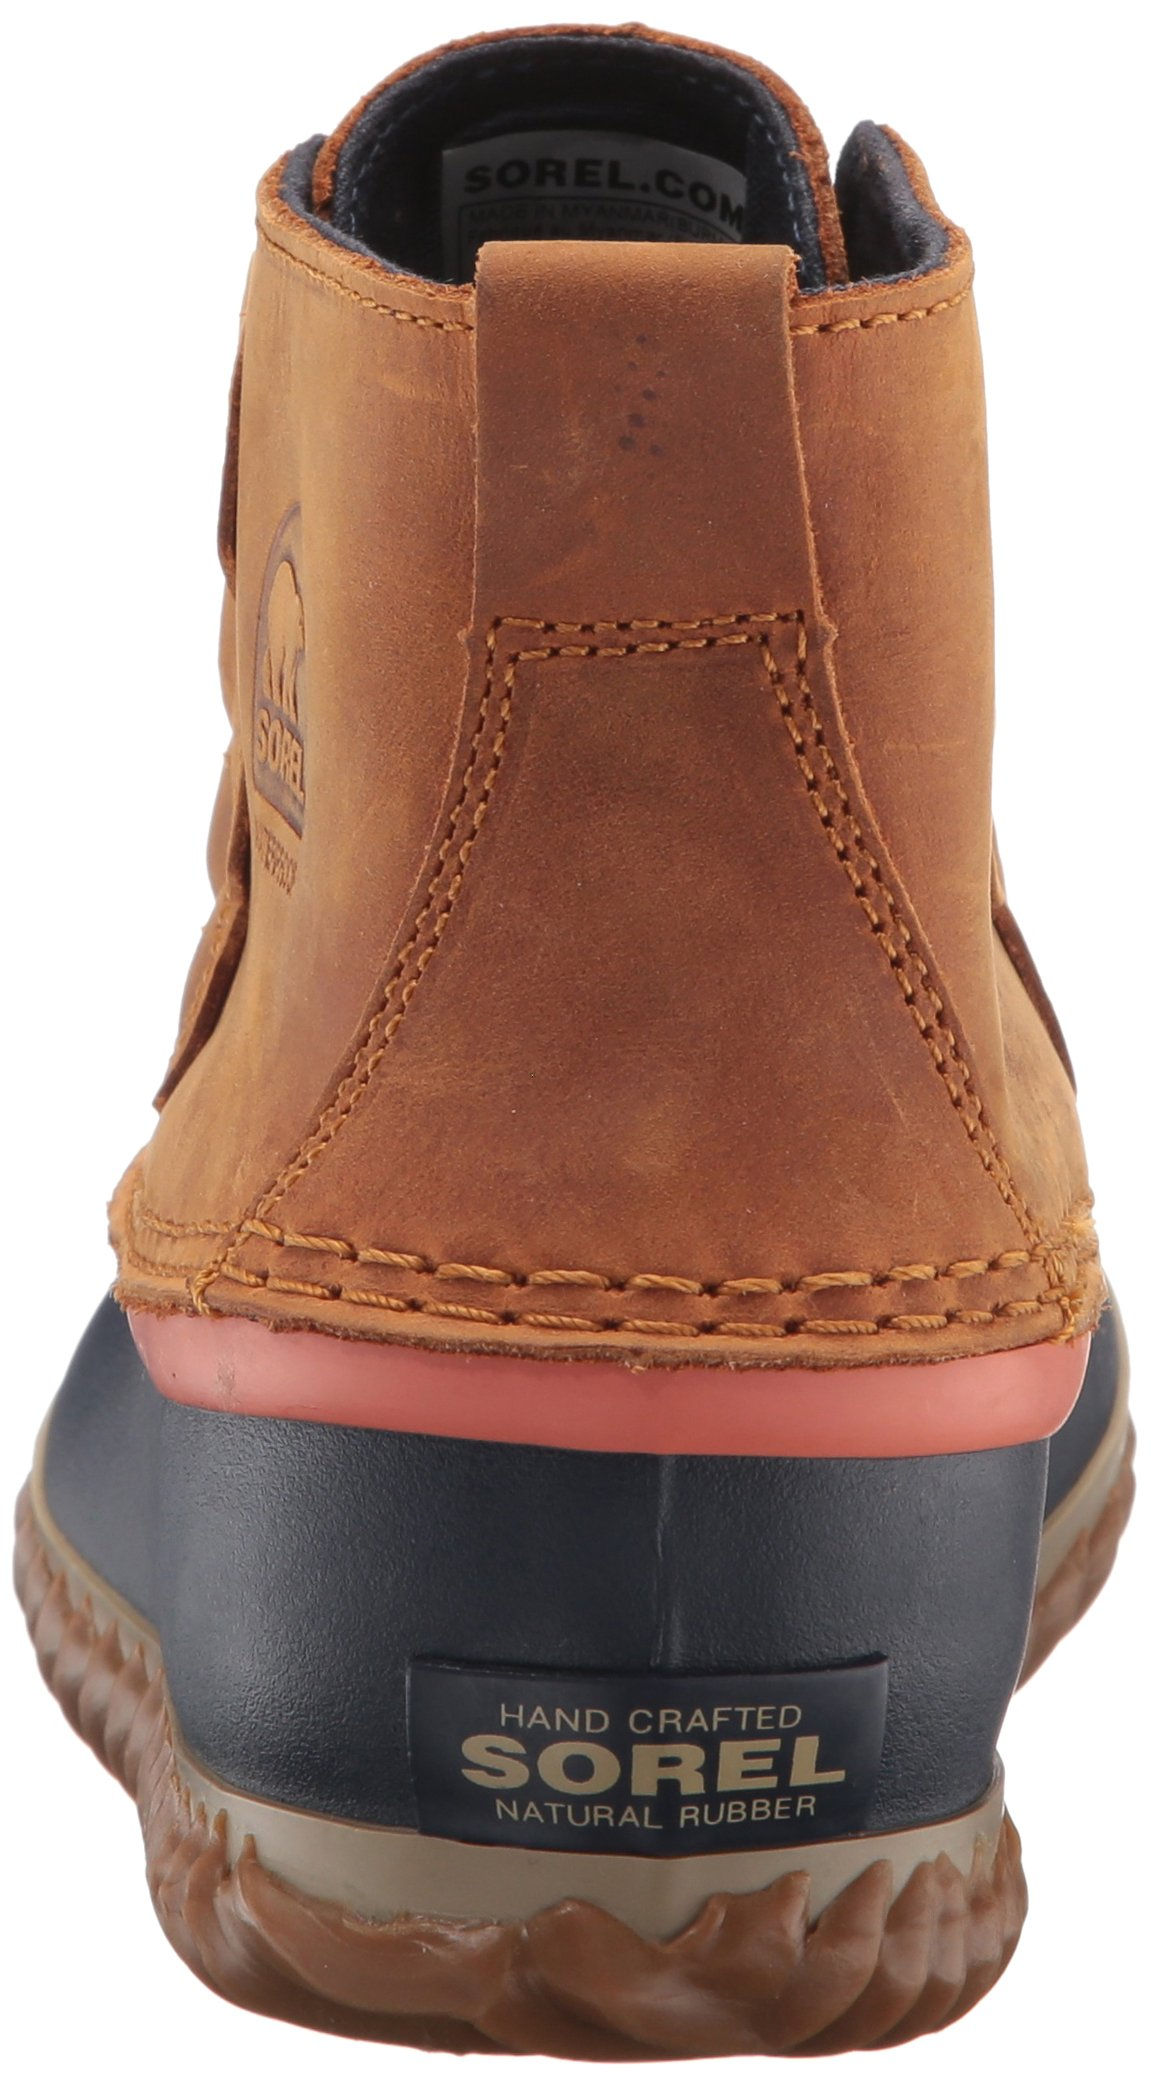 Sorel Women's Out N About Snow Boot, Brown, 6 B US by SOREL (Image #2)